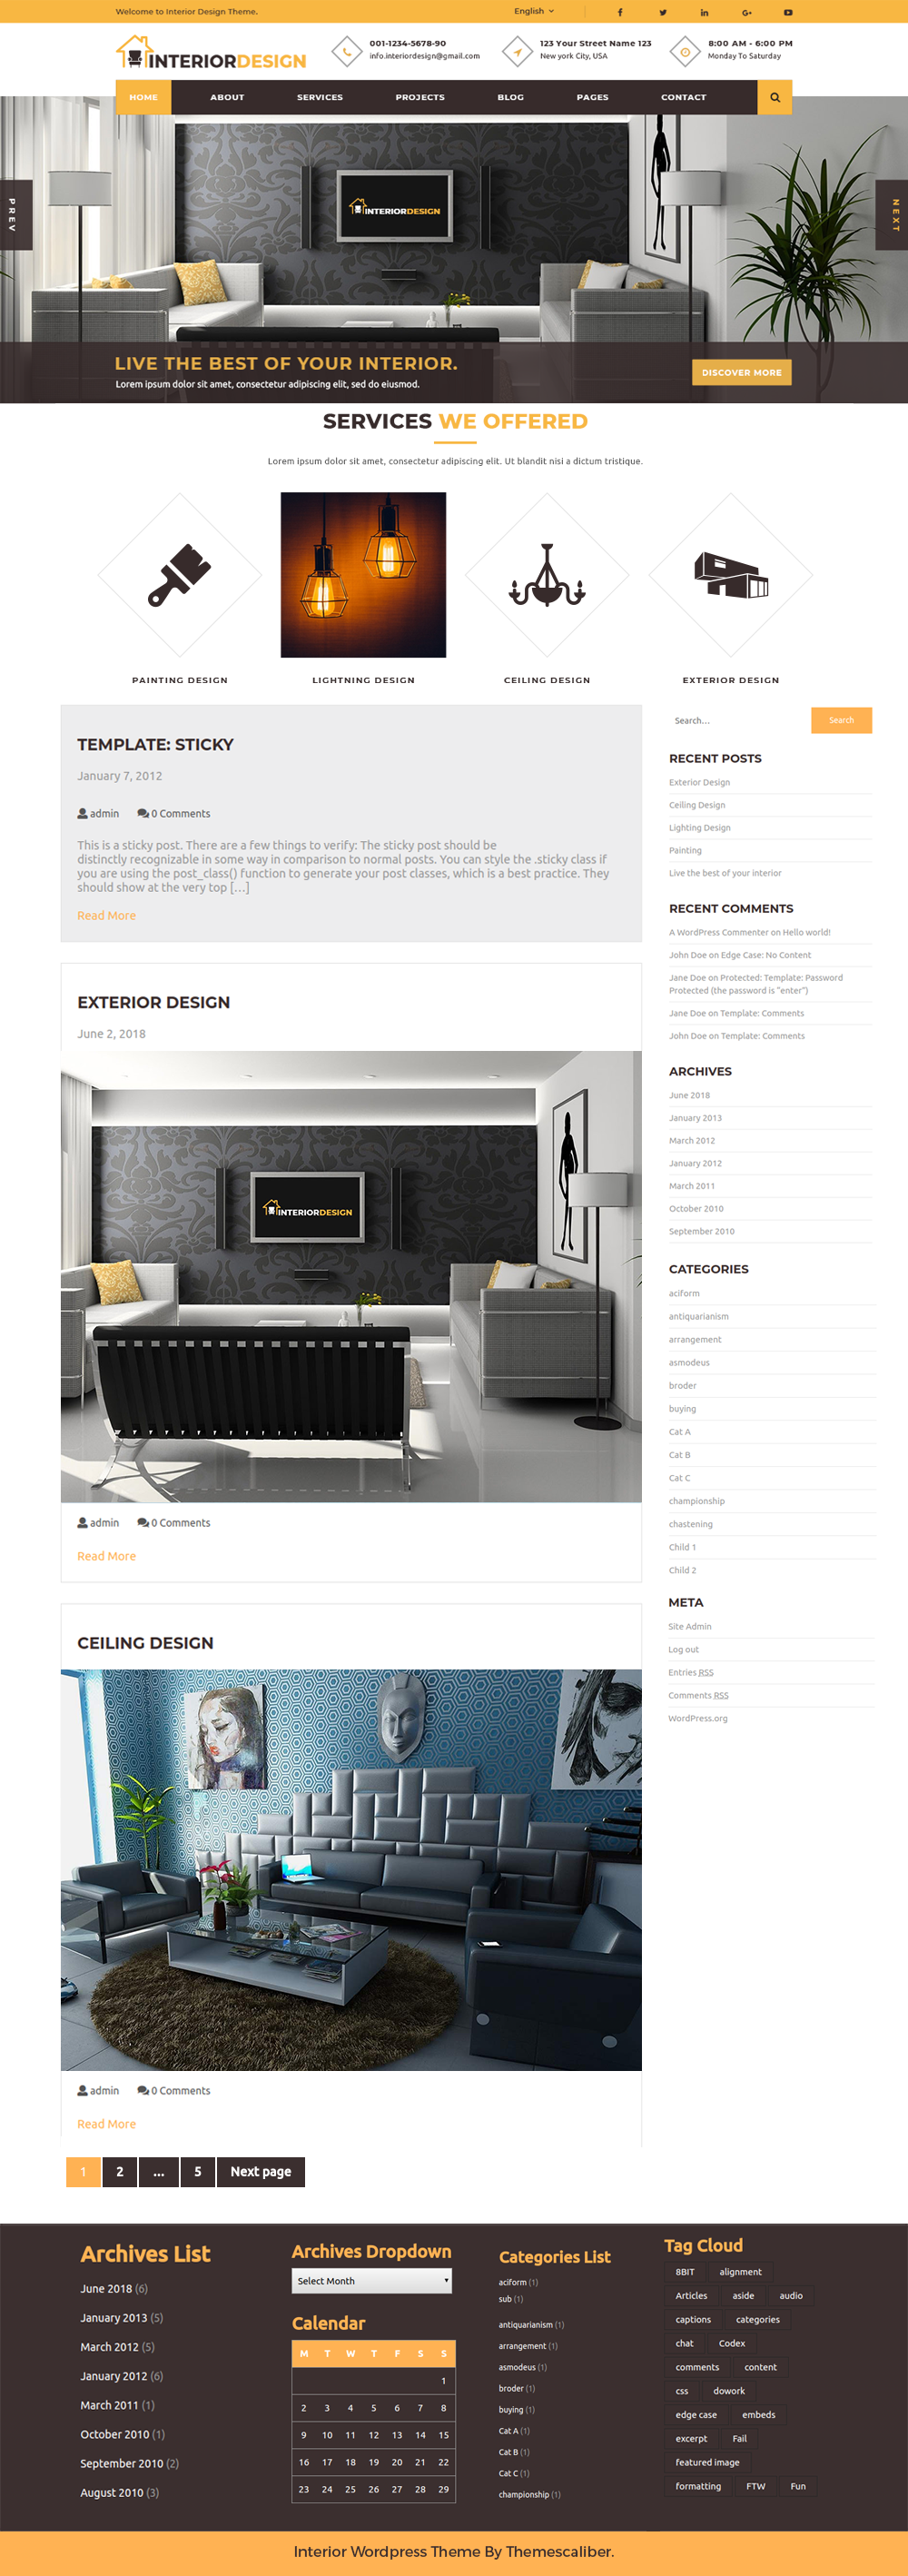 A free interior design wordpress theme with great look and feel for Interior design wordpress theme